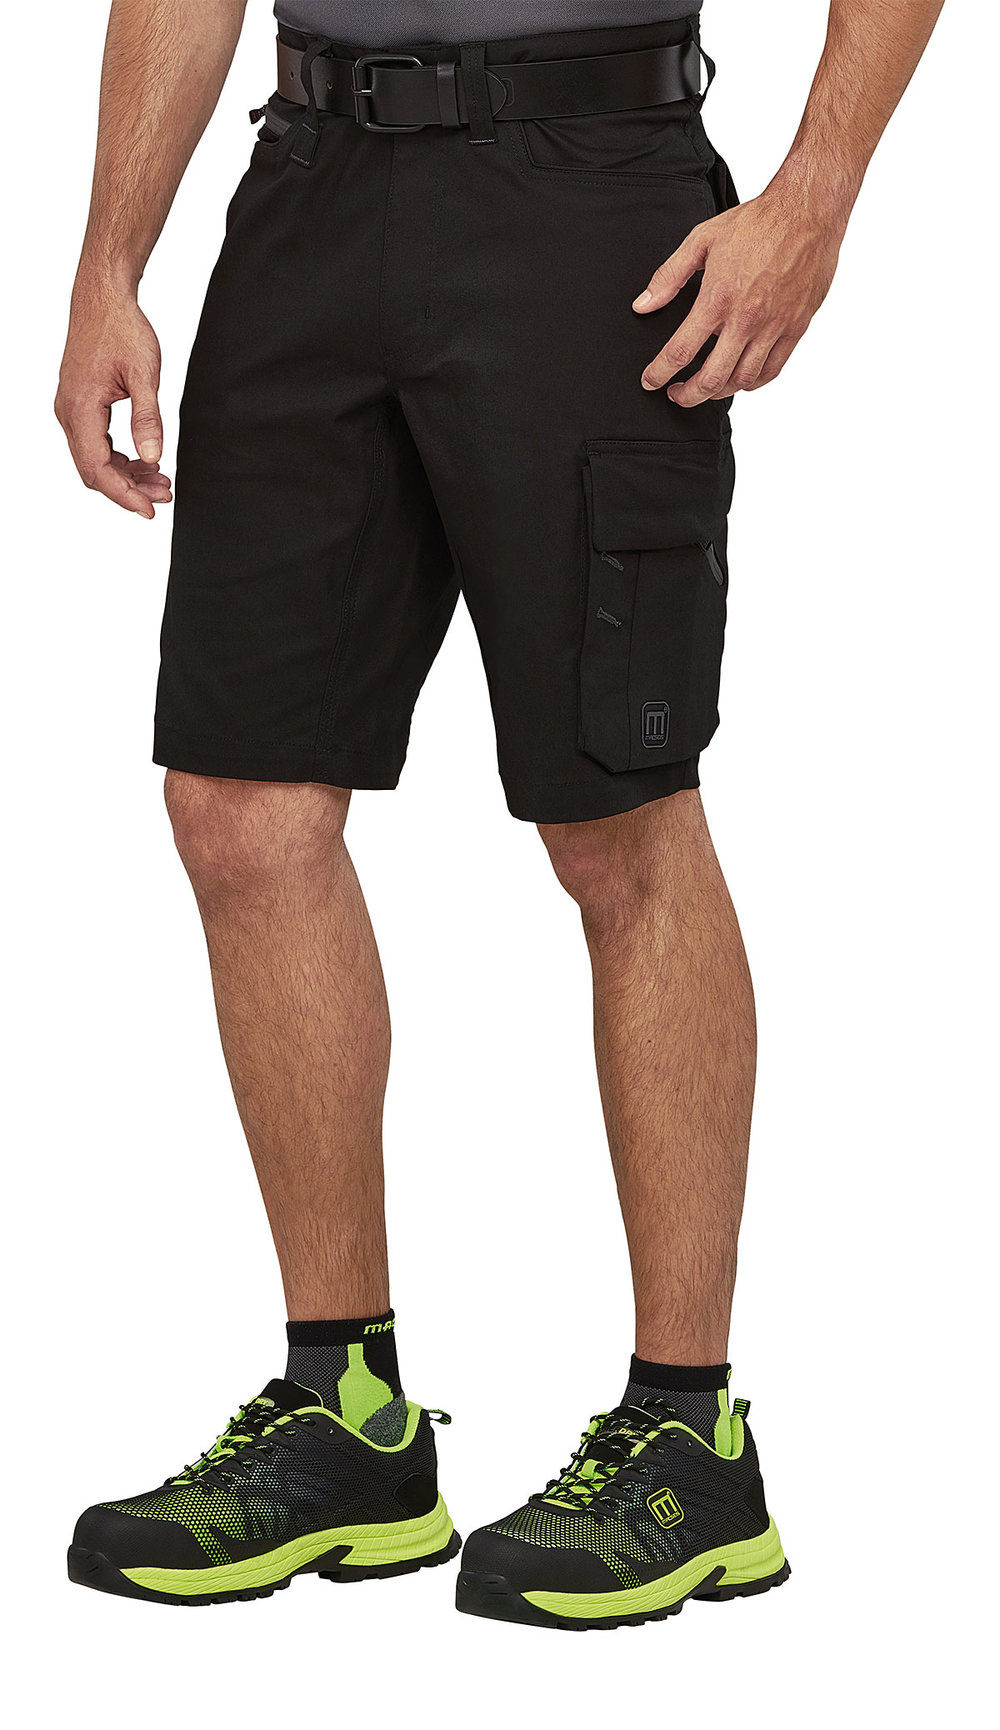 PRONEON FUNCTIONAL WORK SHORTS MALE MACBLACK